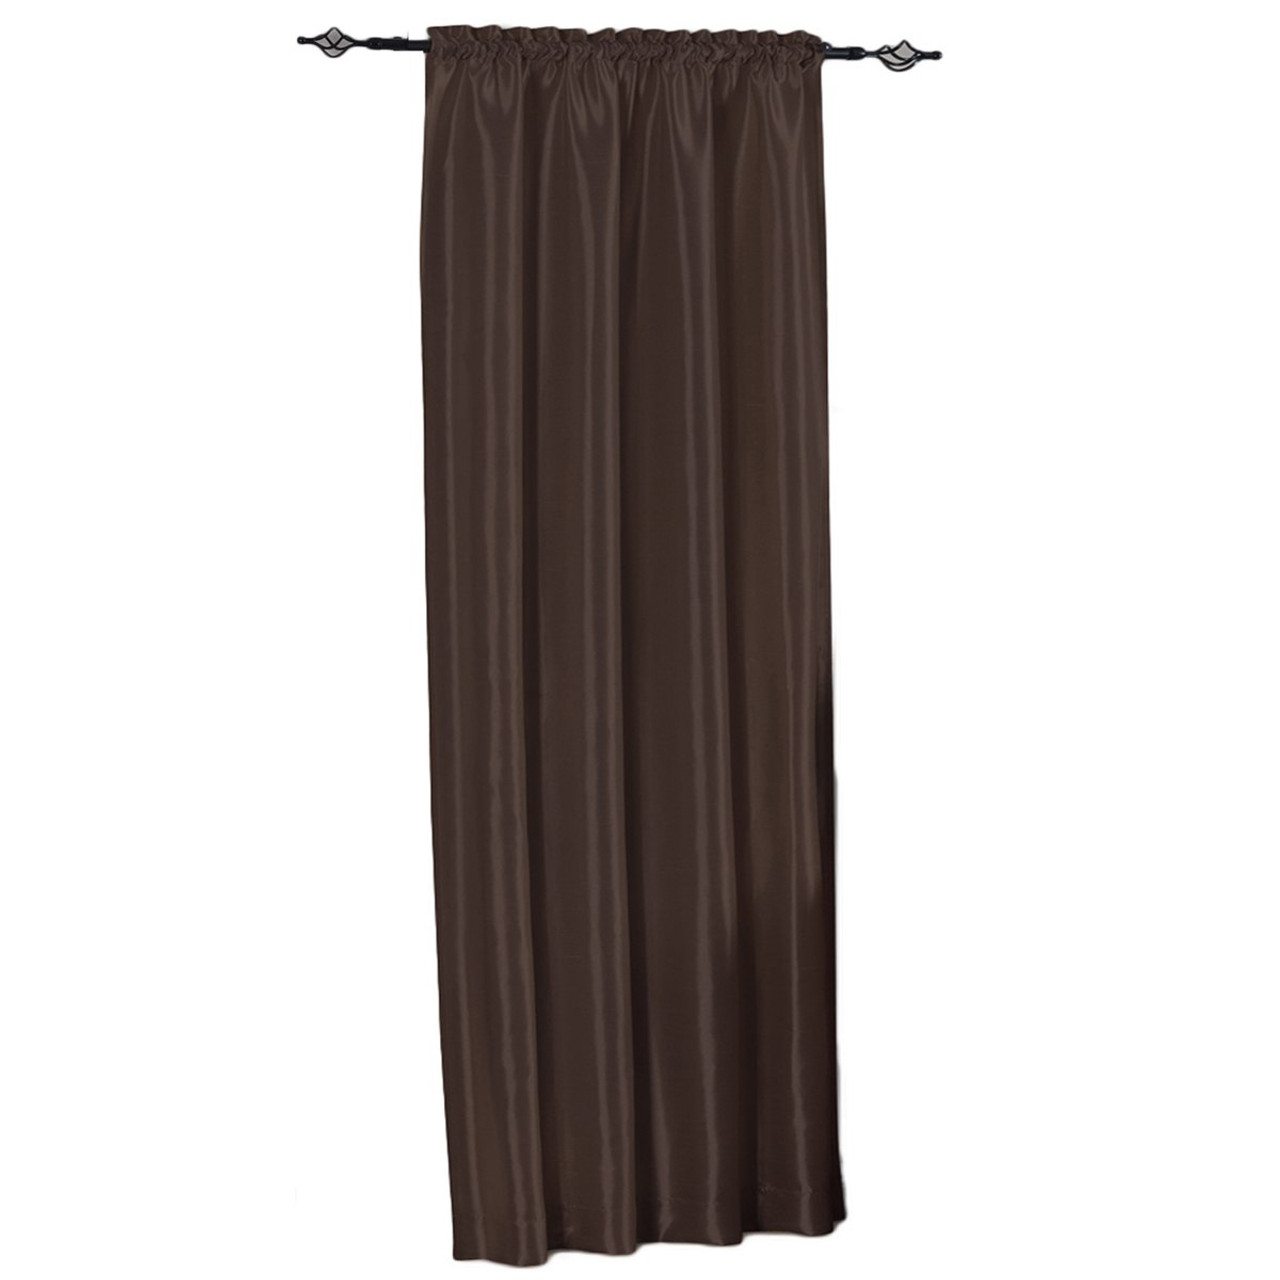 curtains drapes curtain lined luxury pin silk honolulu pistachio colour lounge eyelet and